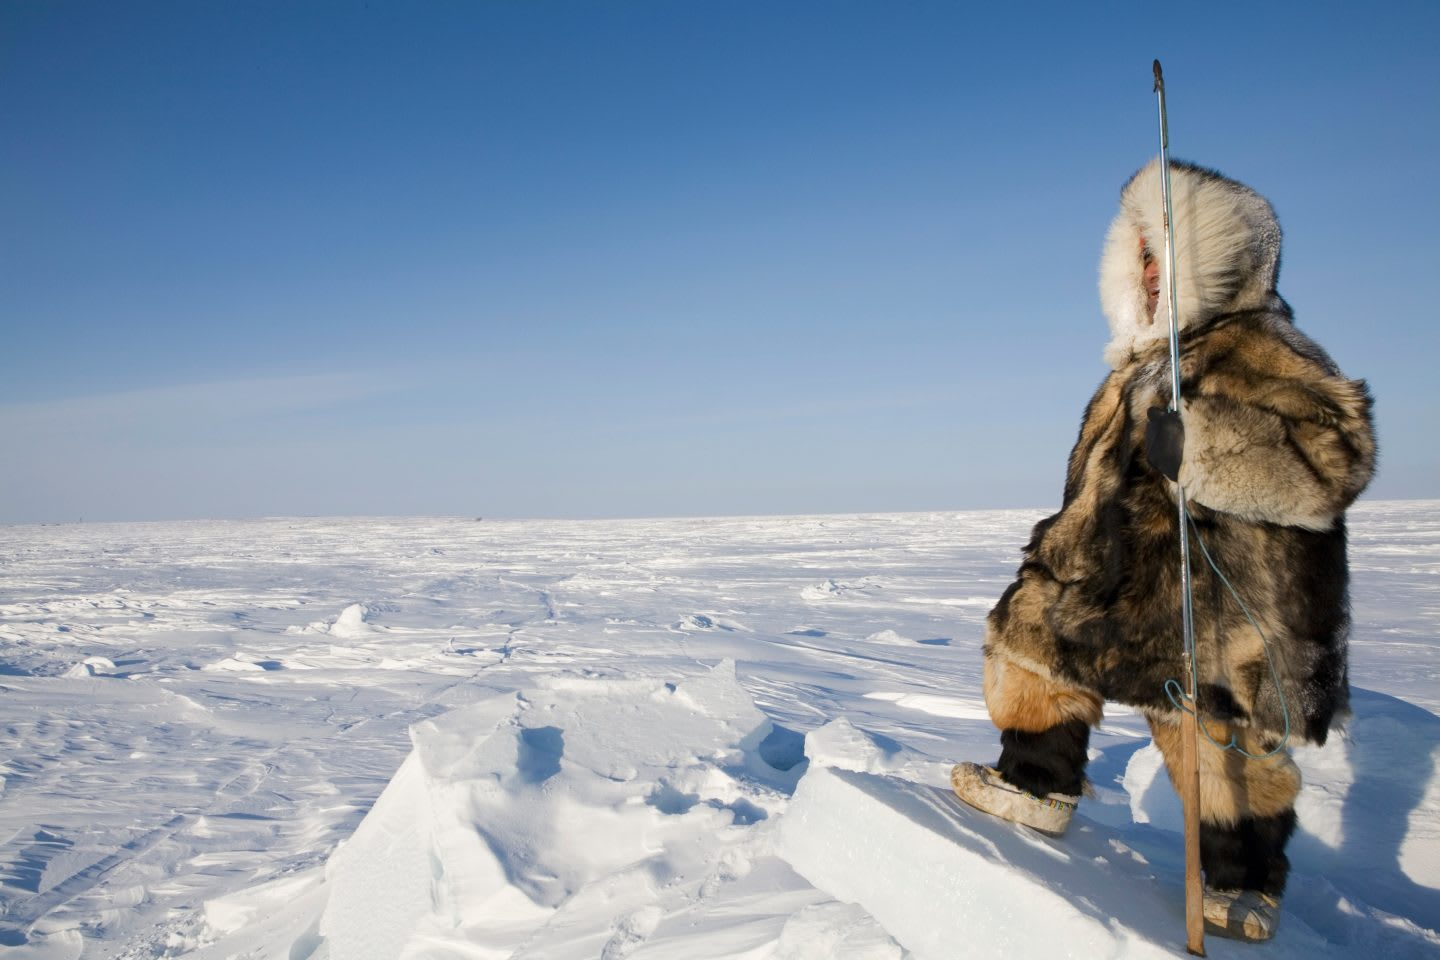 An Inuit man is hunting for wild animals on the north pole, Canada, cold, outdoor, anorak